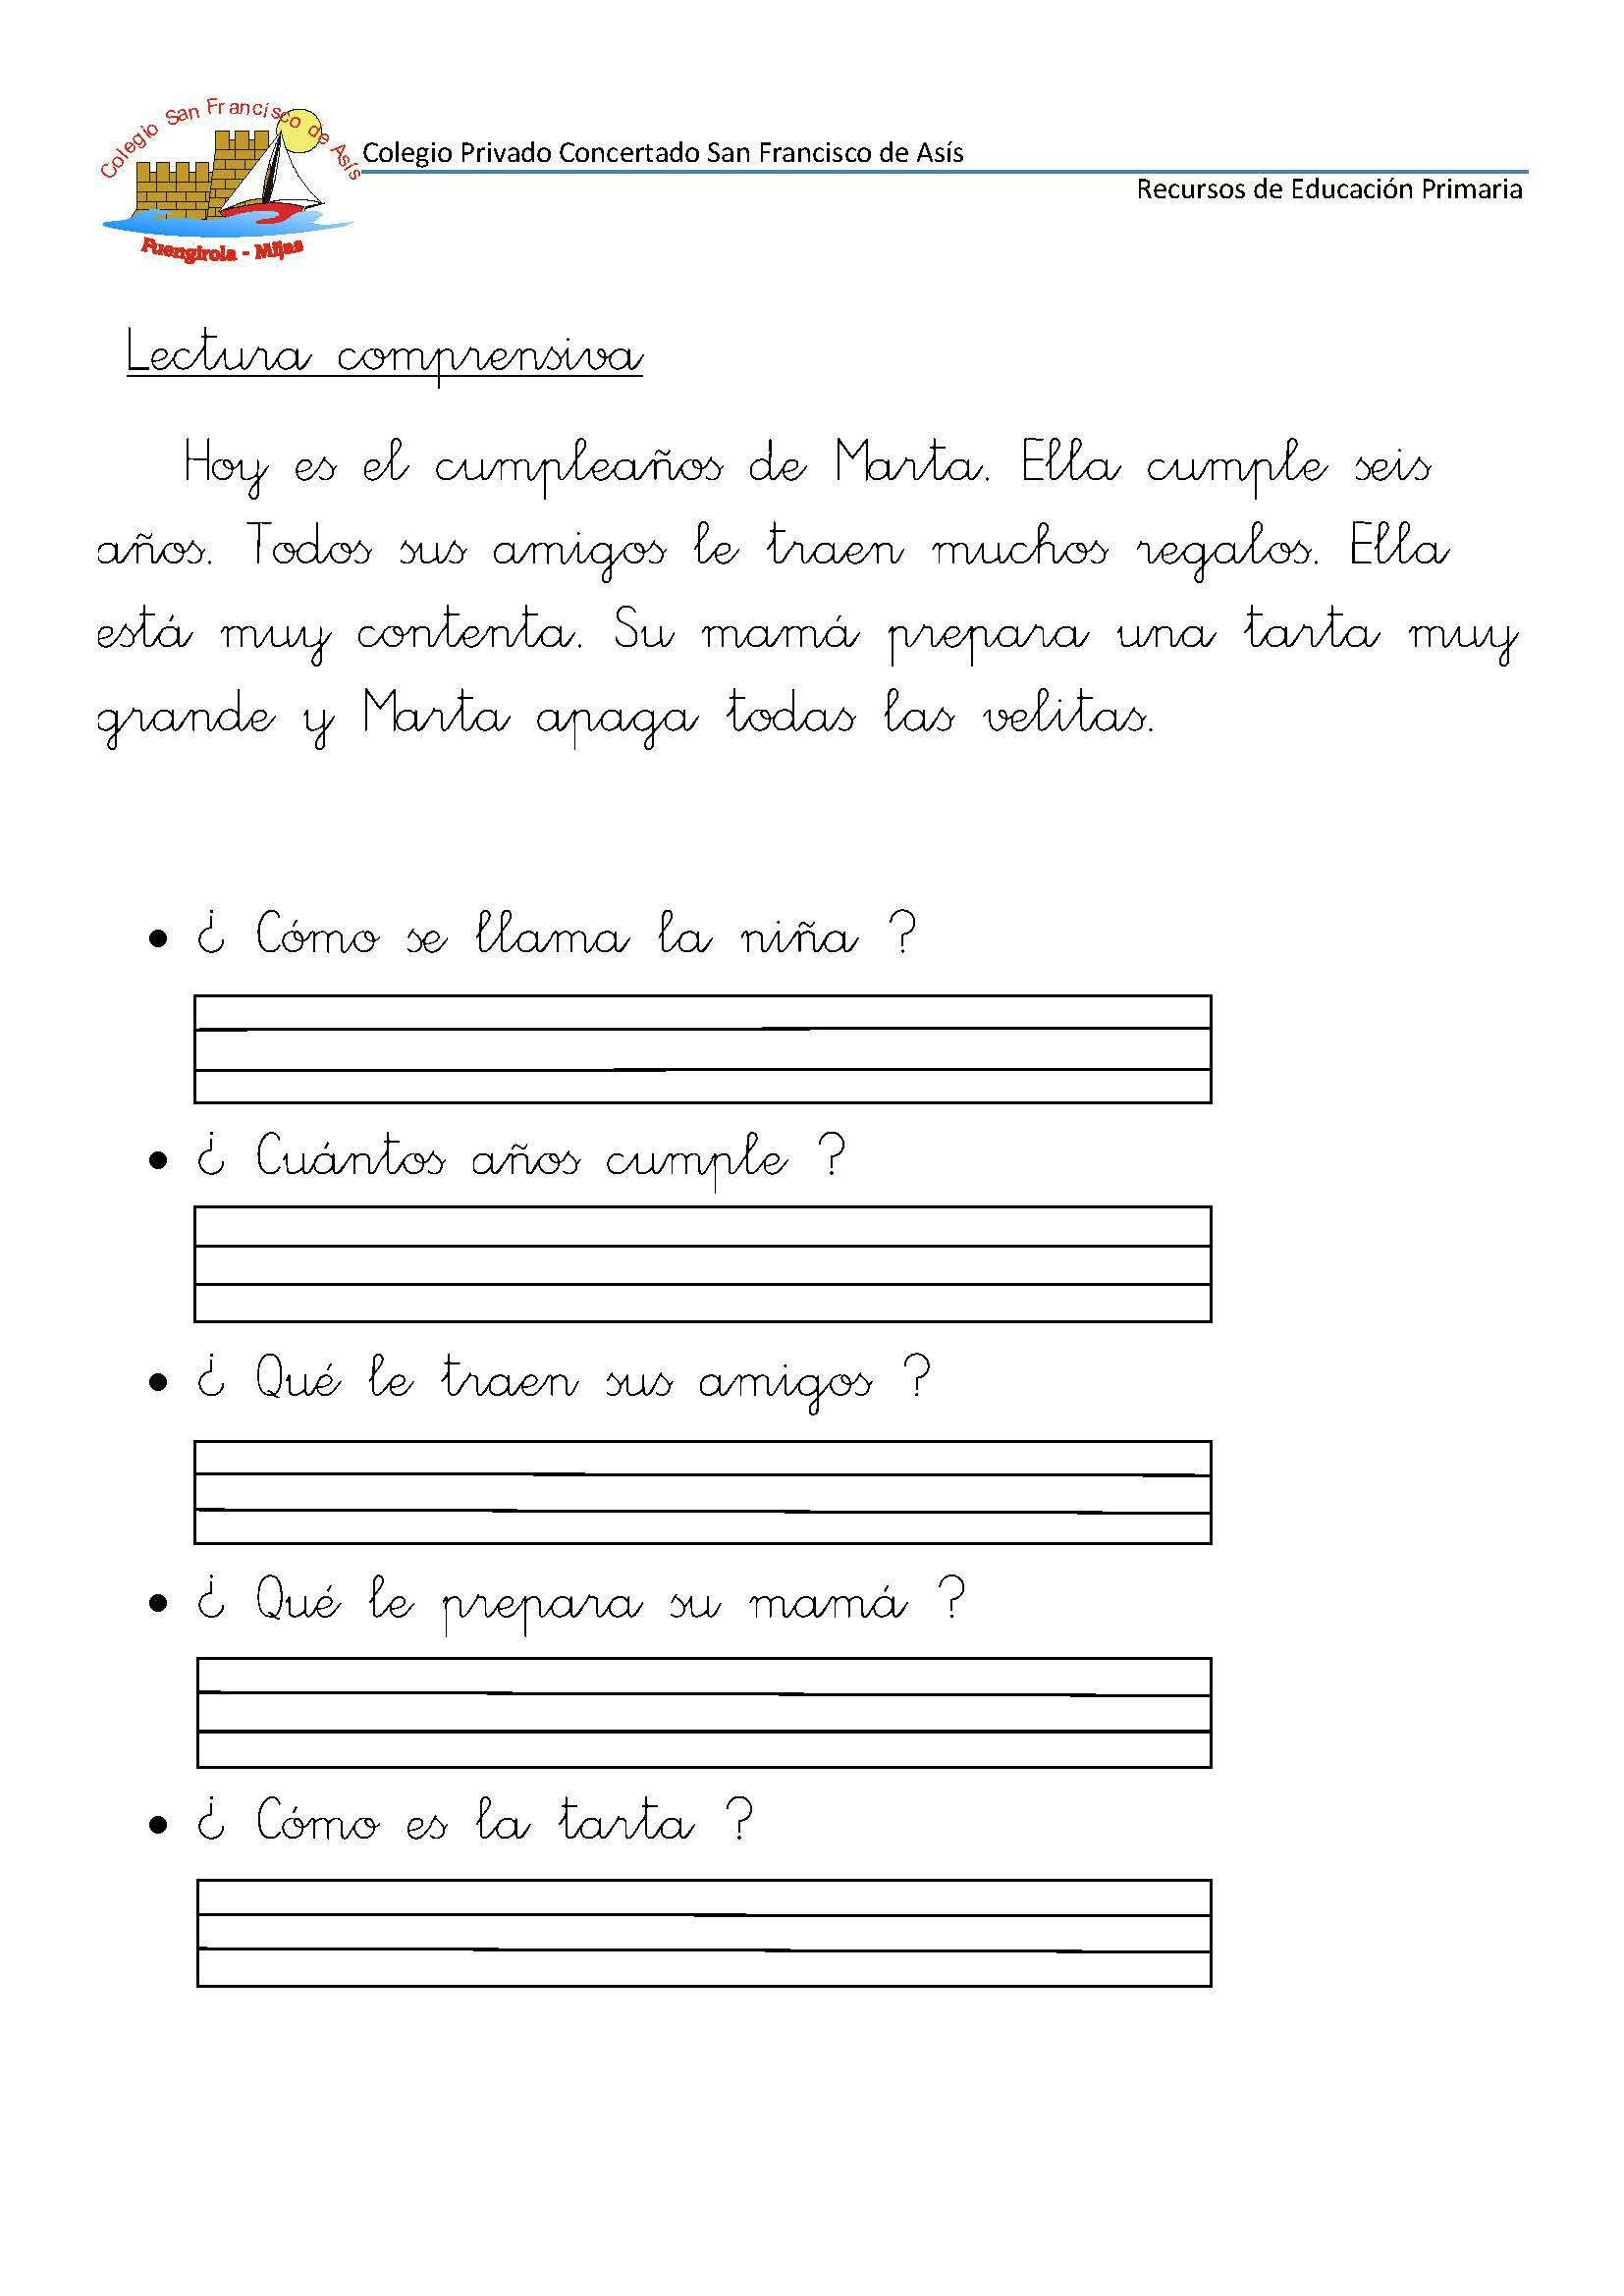 50 Fichas De Comprensión Lectora Para Primer Grado Y Primer Ciclo De Primaria Página 02 Jpg 1654 2339 Activities For Kids Activities School